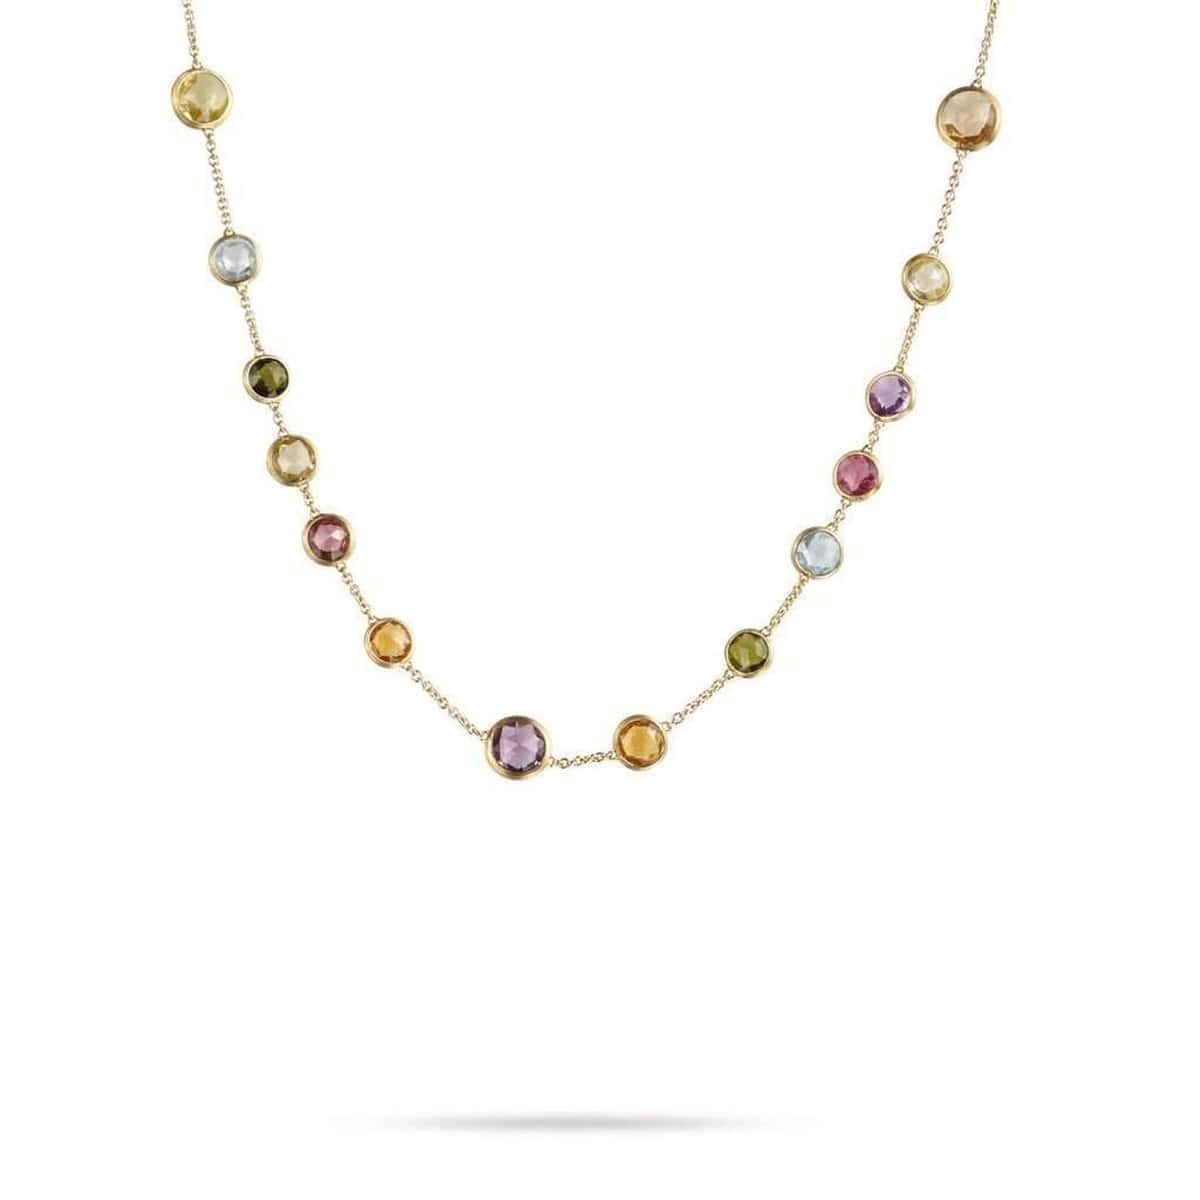 "Jaipur Mixed Gemstone Necklace - CB1304 MIX01 Y 17""-Marco Bicego-Renee Taylor Gallery"